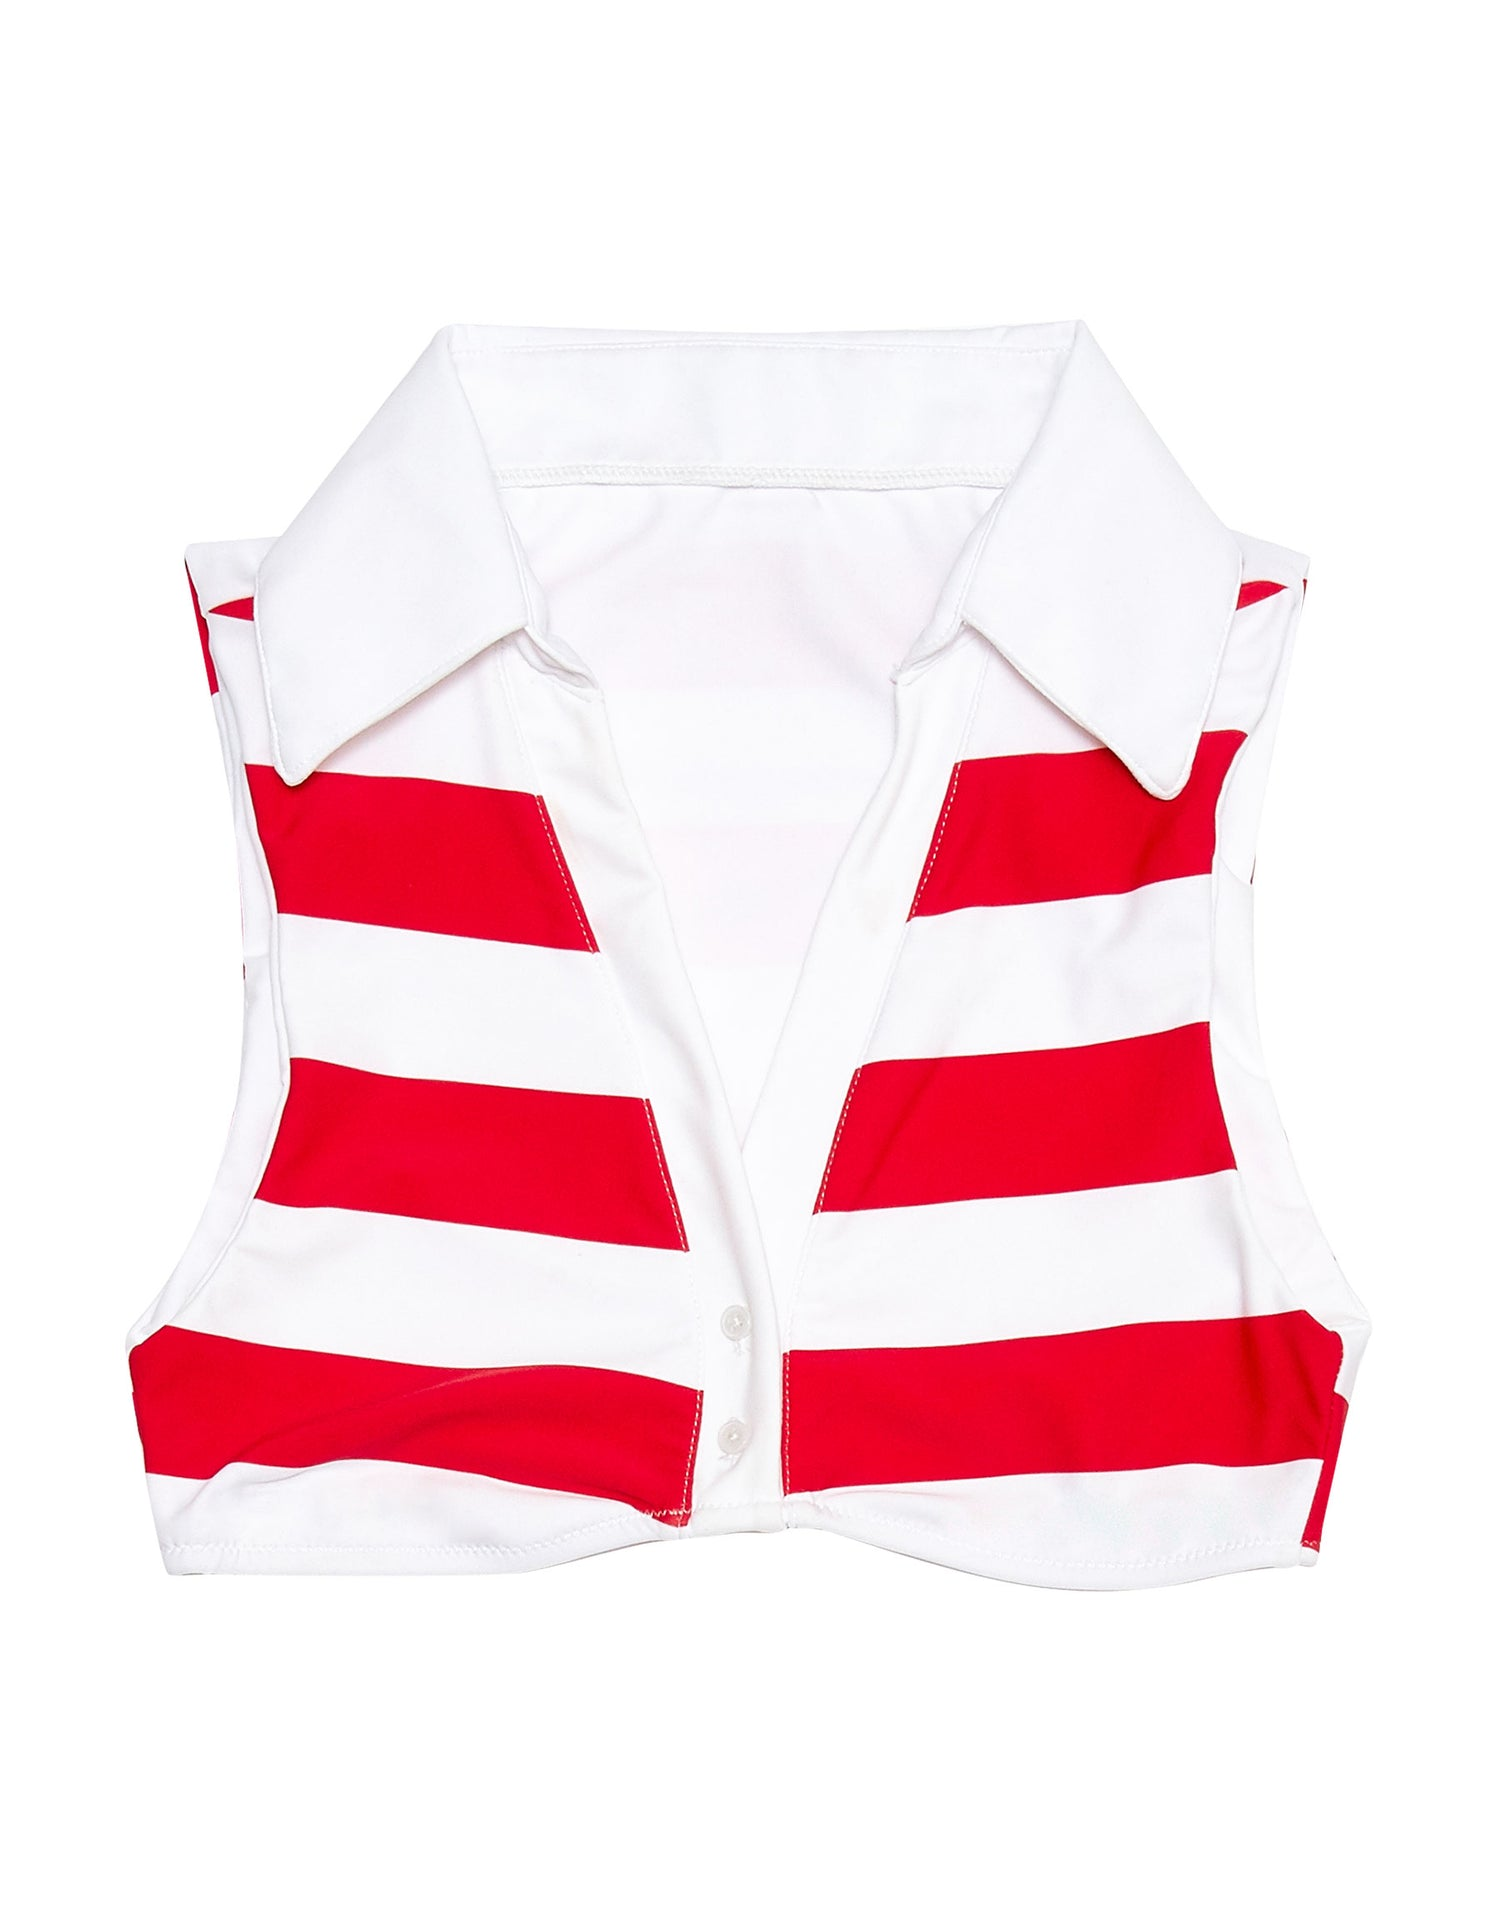 Lola Crop Bikini Top with a Collar in Red Stripe - product view